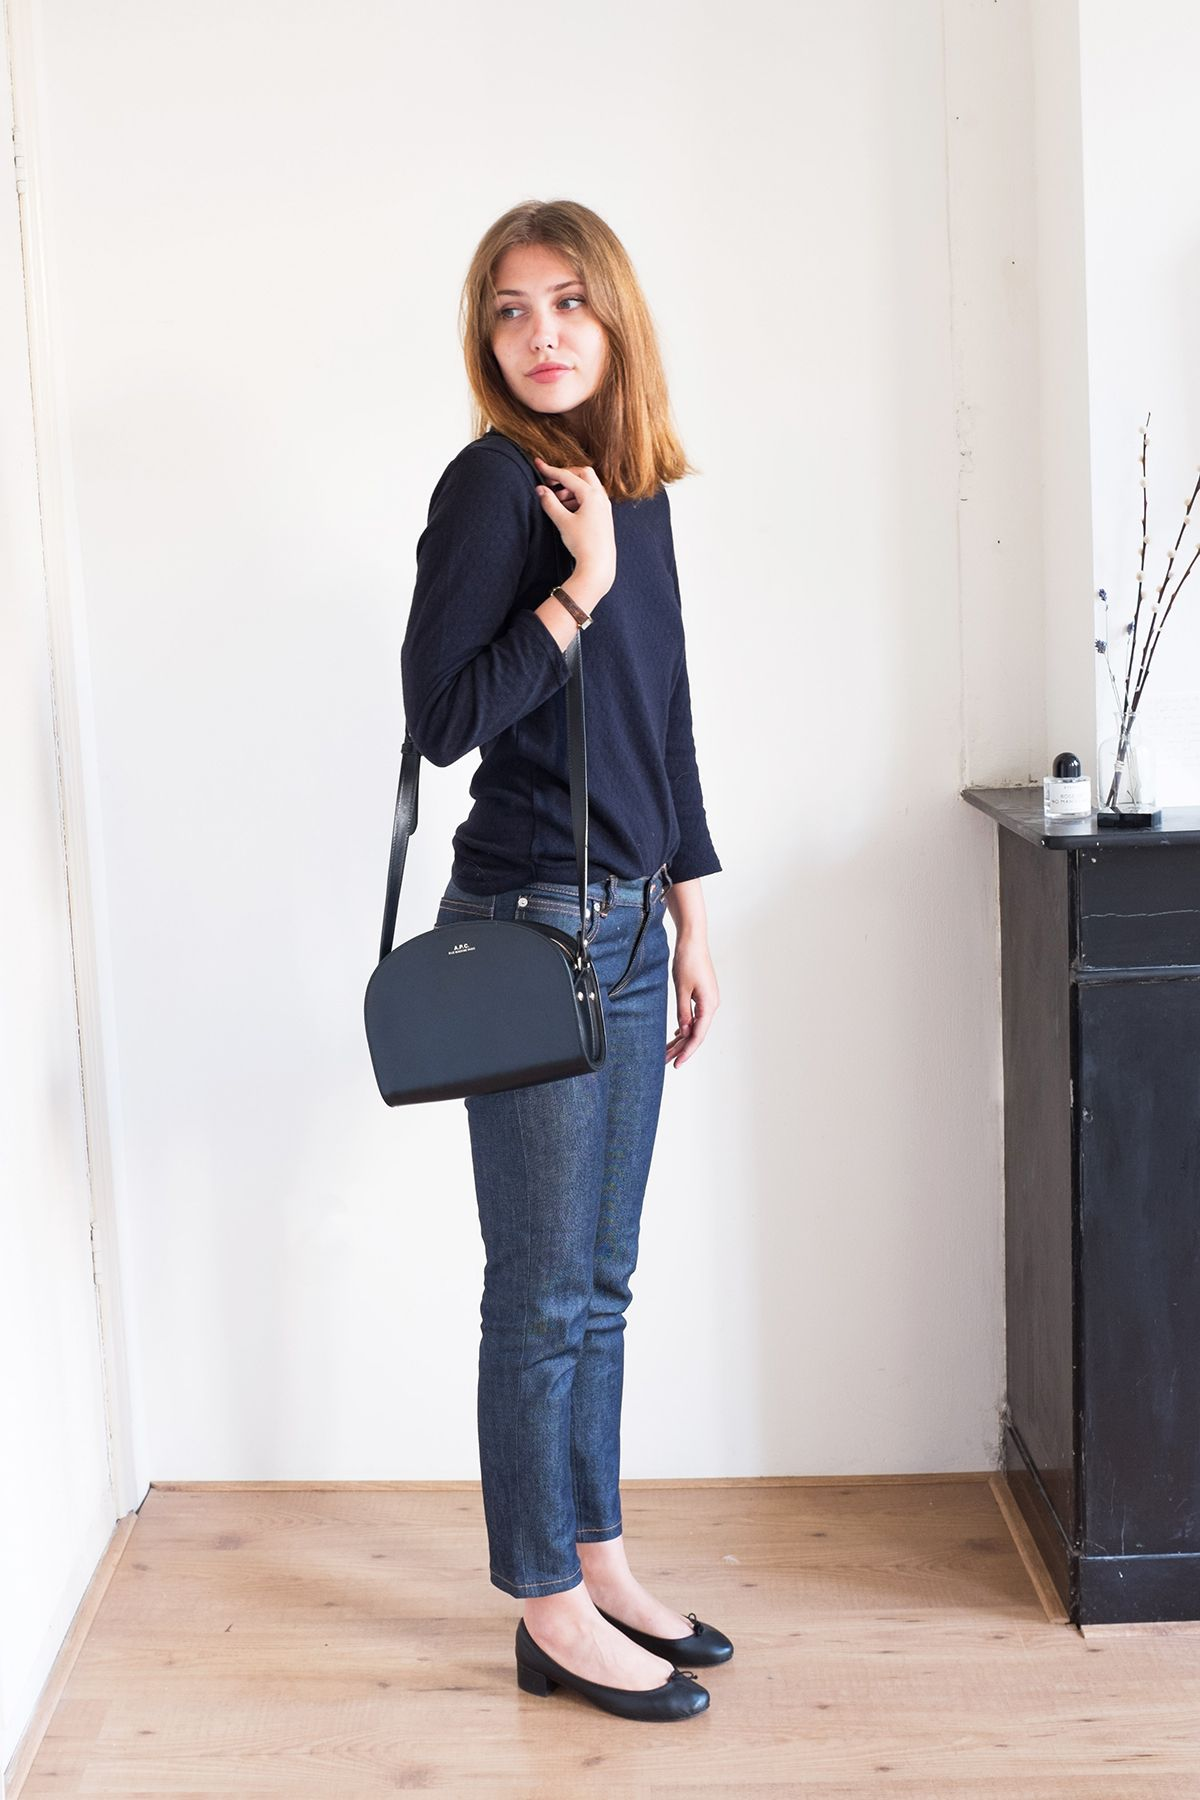 Simple Fashion With Jeans | Www.pixshark.com - Images Galleries With A Bite!